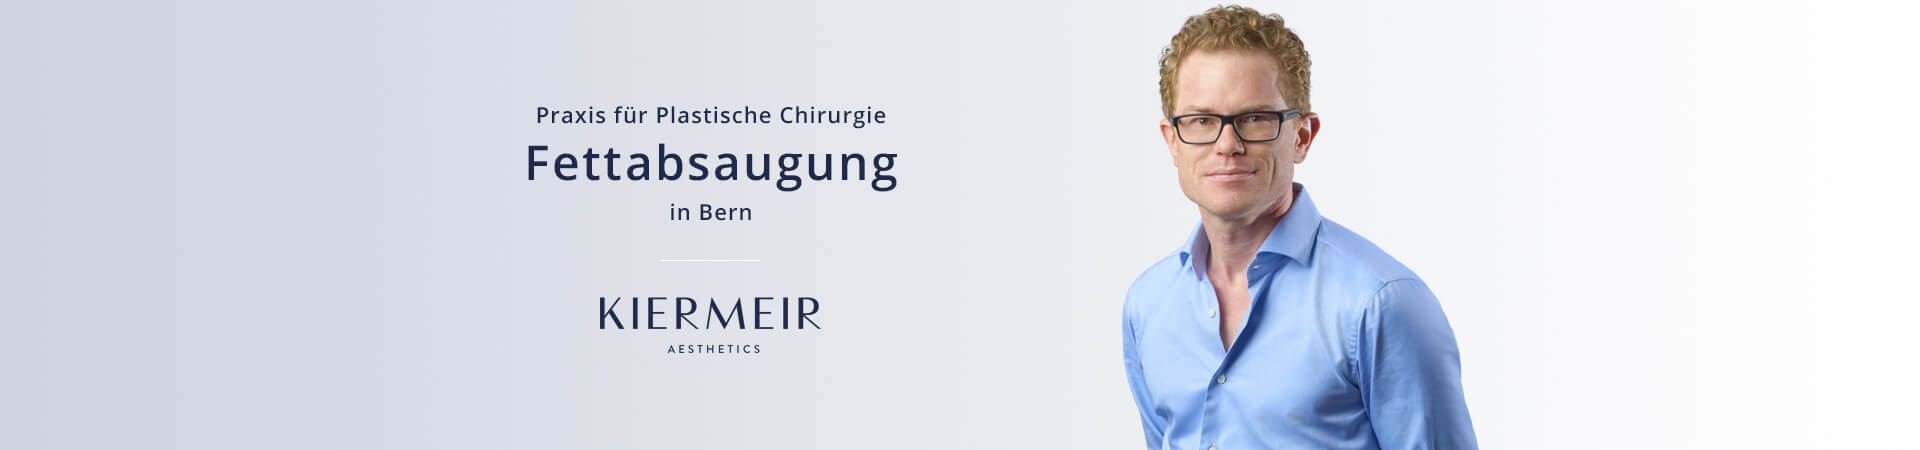 Fettabsaugung in Bern - Dr. David Kiermeir